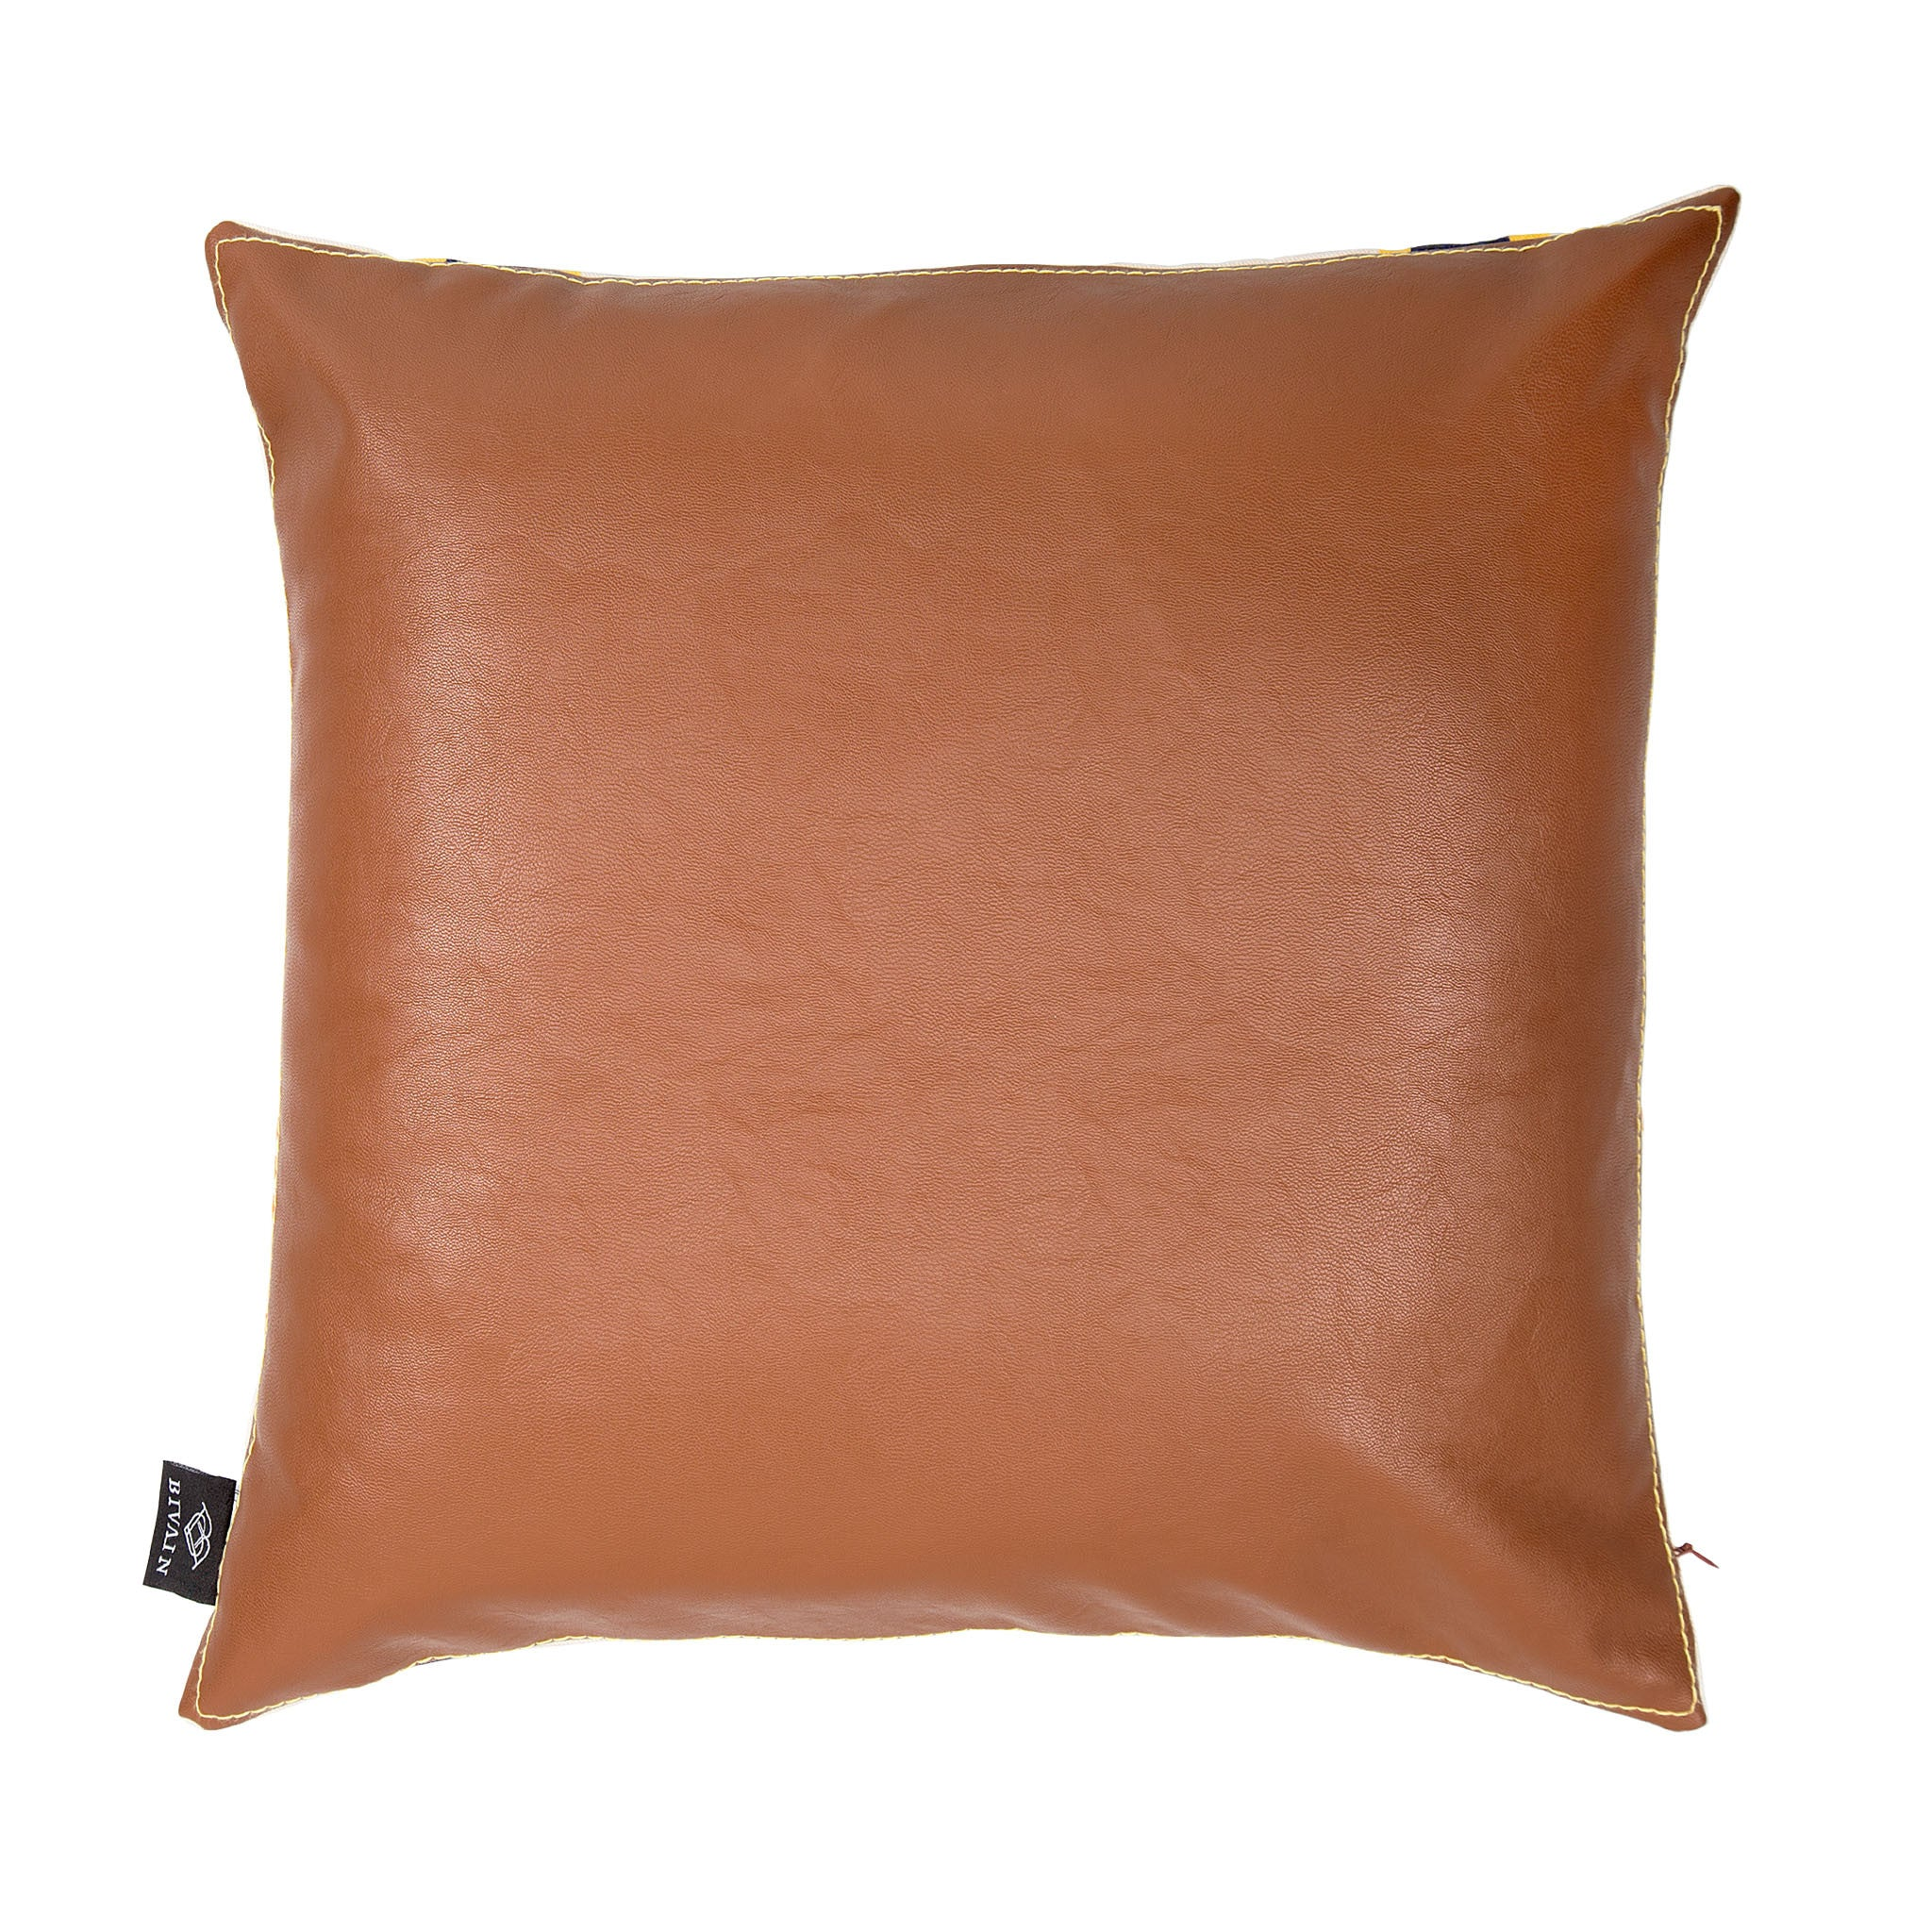 Silk twill and faux leather orange striped cushion - Bivain - 3